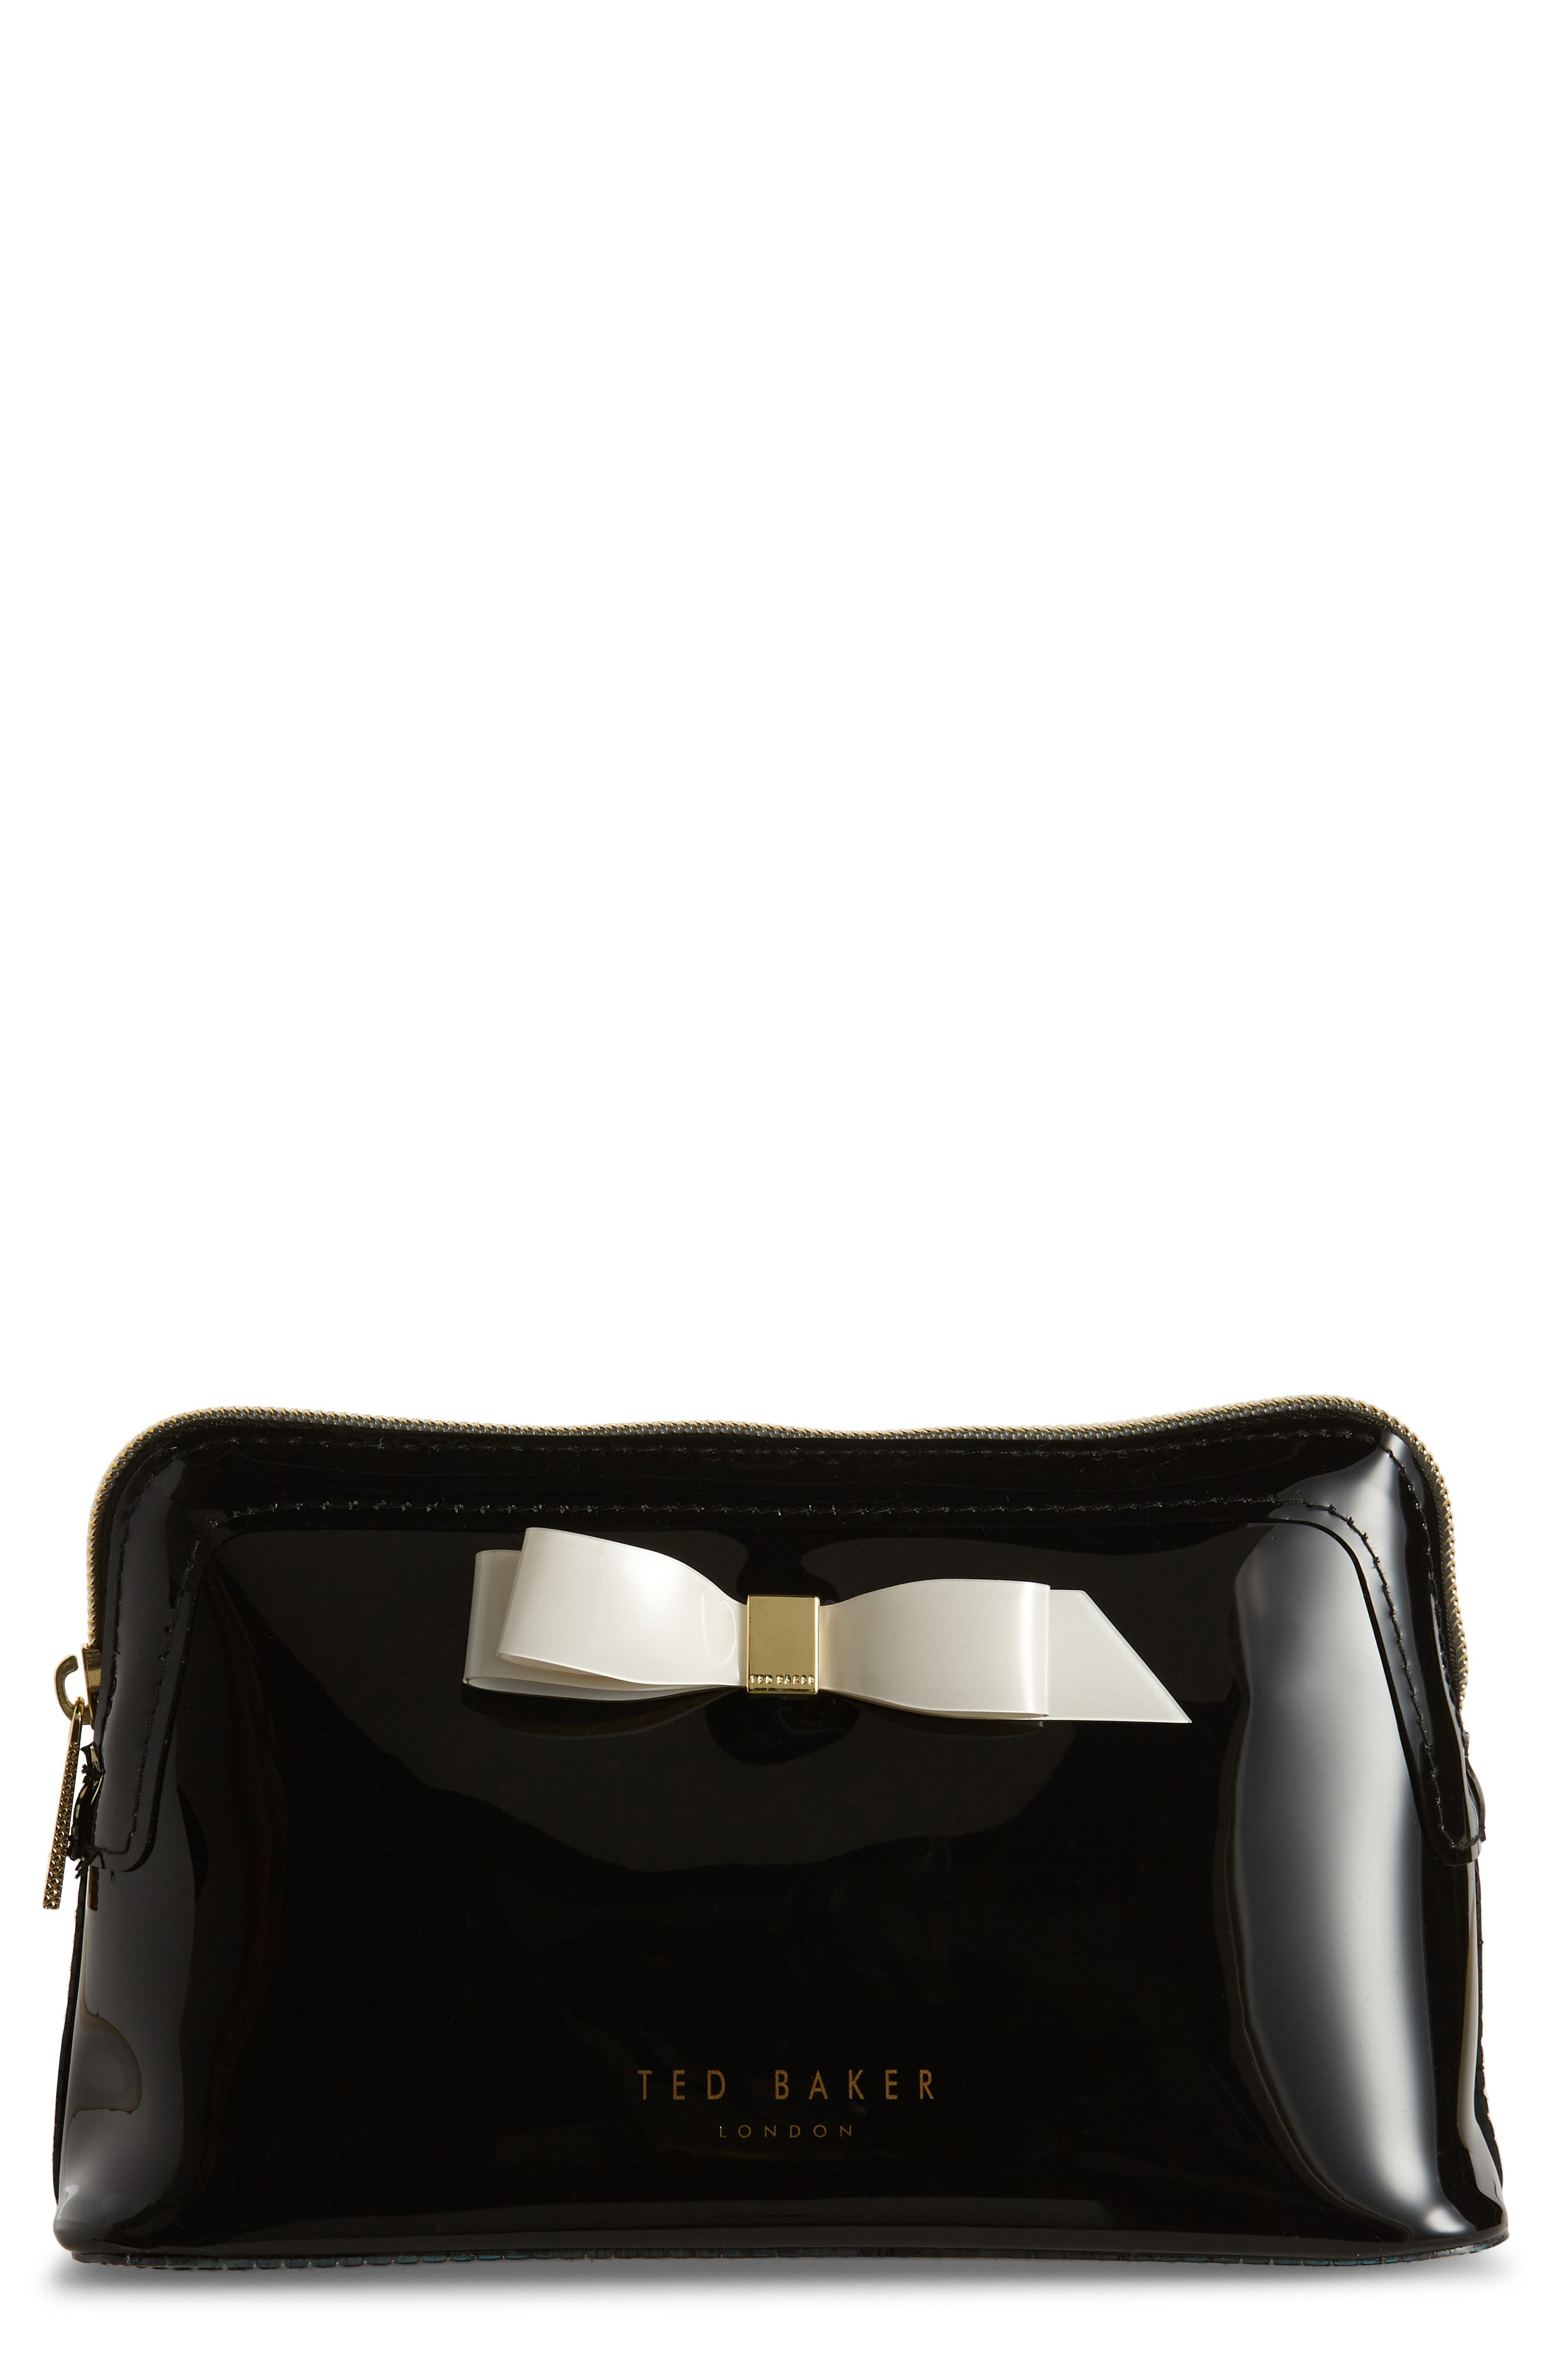 TED BAKER LONDON Cahira Bow Cosmetics Case, Main, color, BLACK